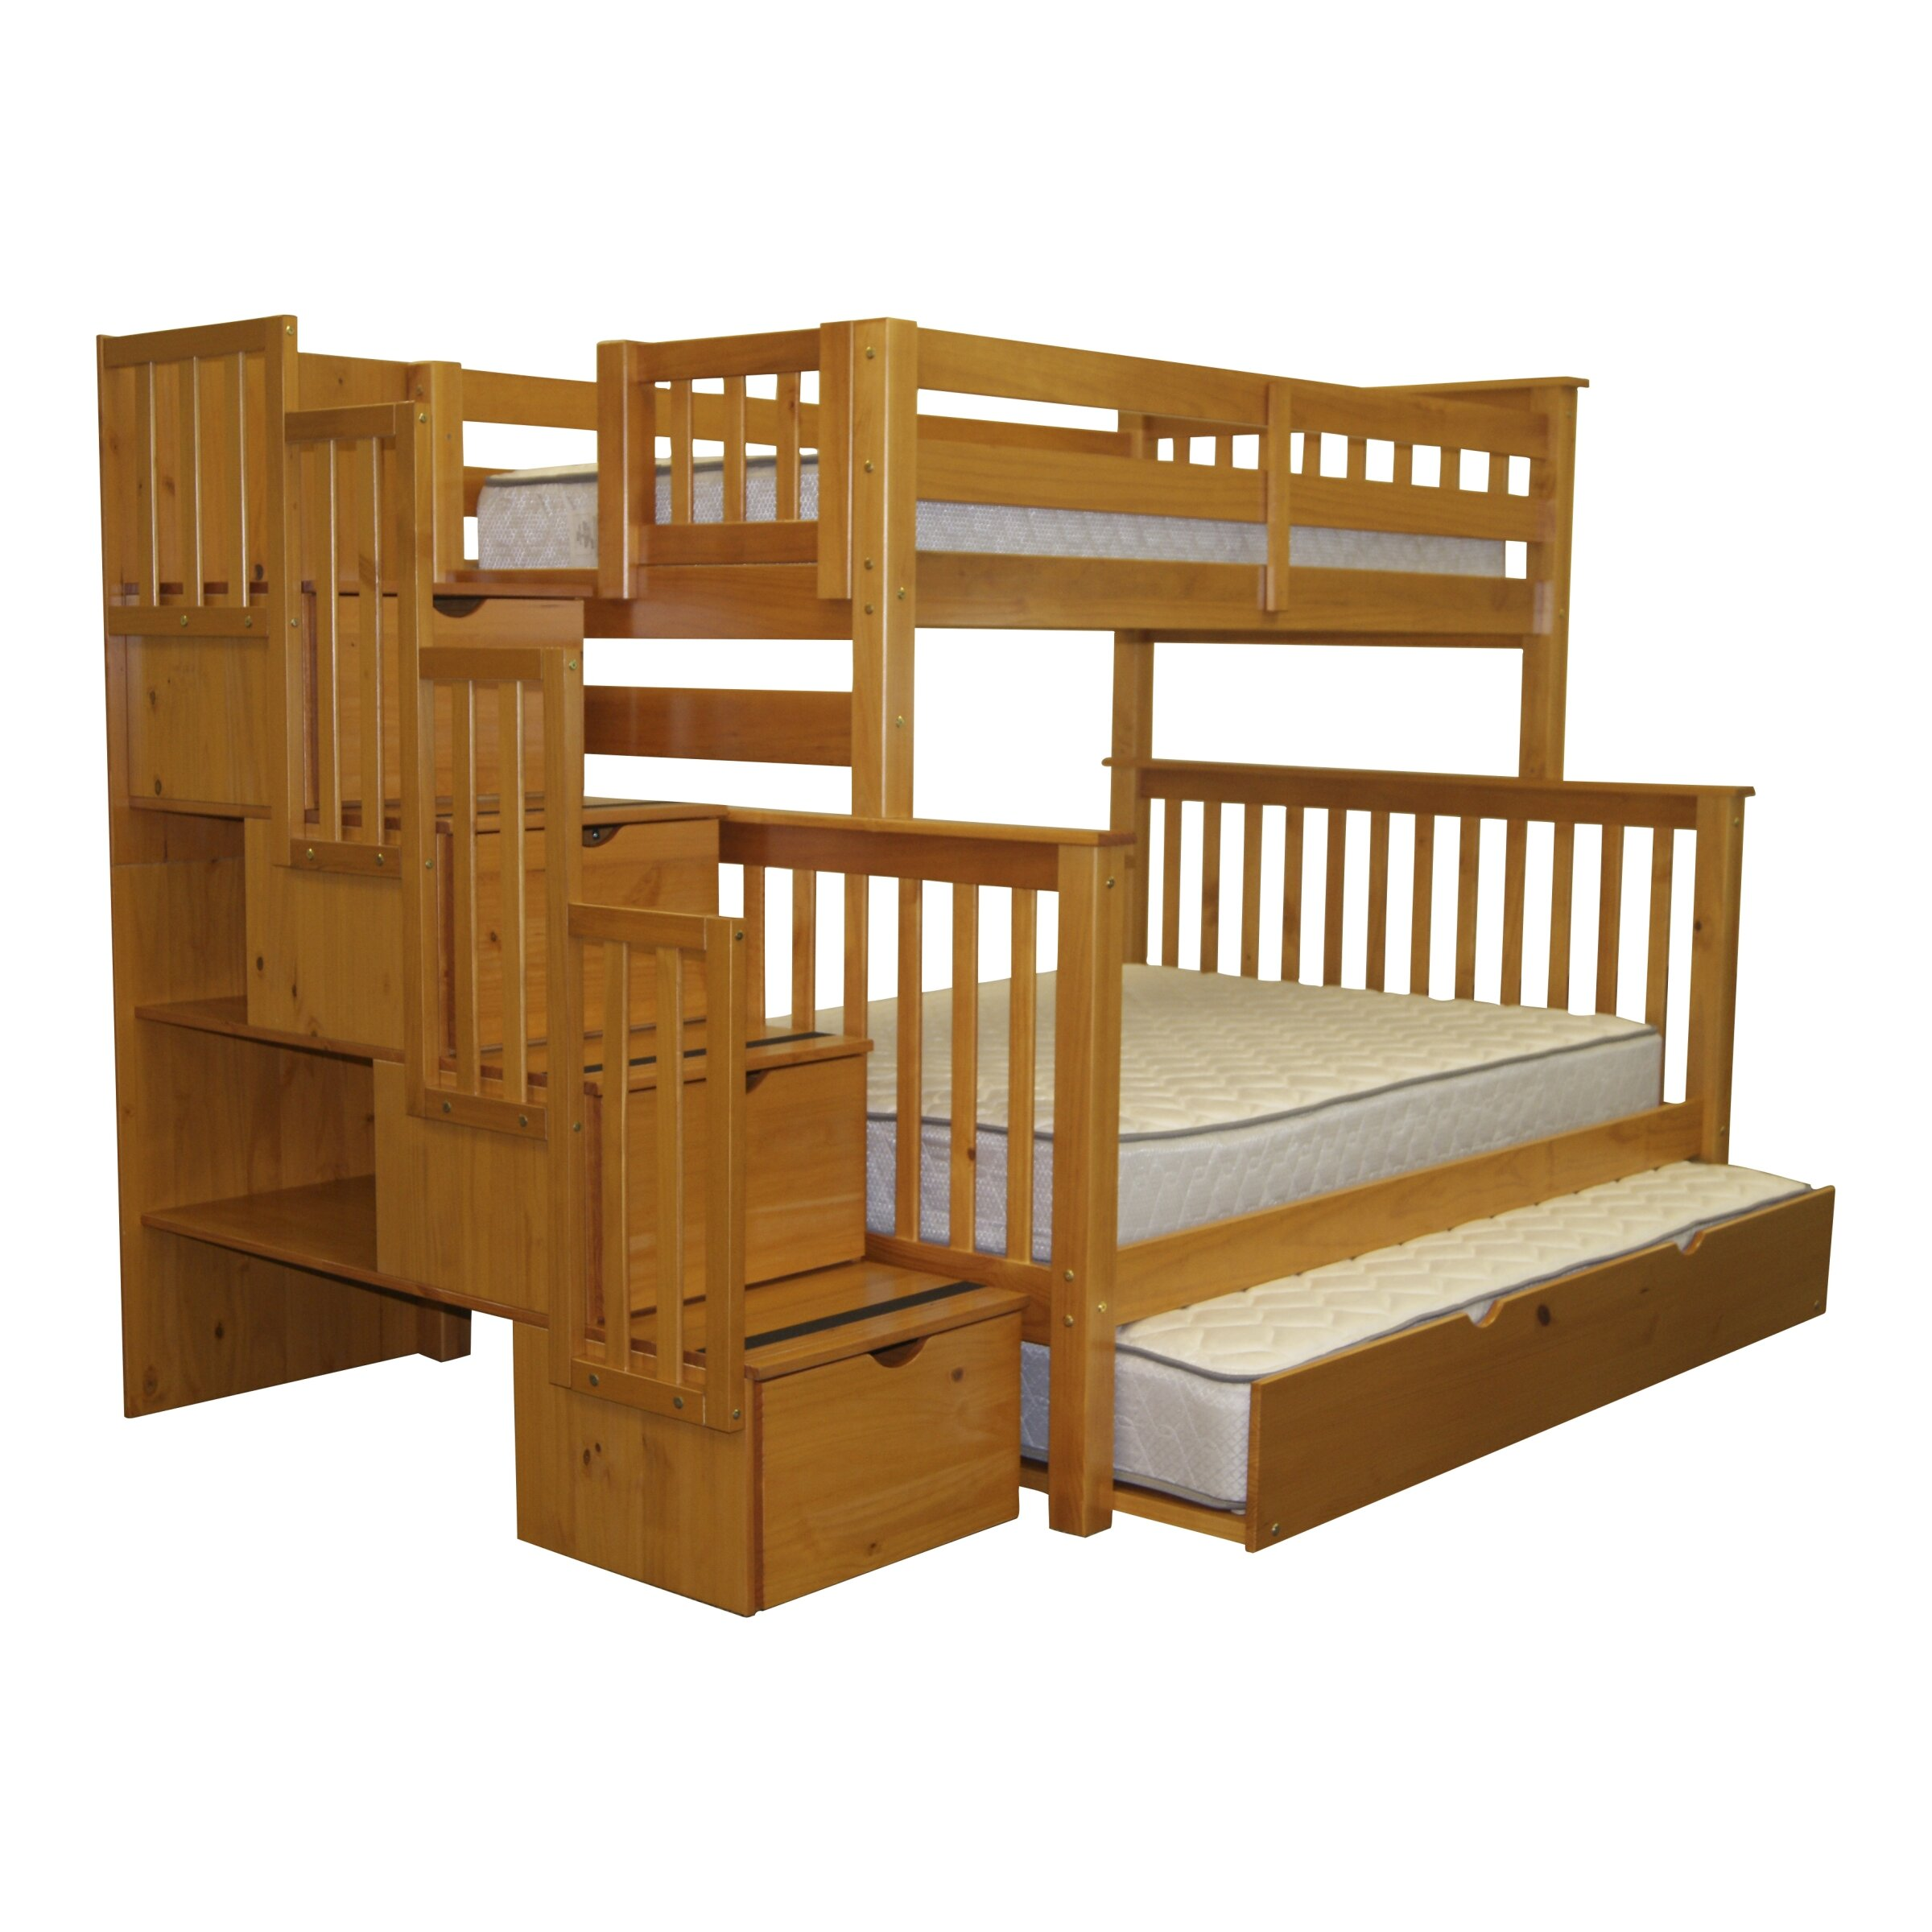 bedz king twin over full bunk bed with trundle reviews wayfair. Black Bedroom Furniture Sets. Home Design Ideas